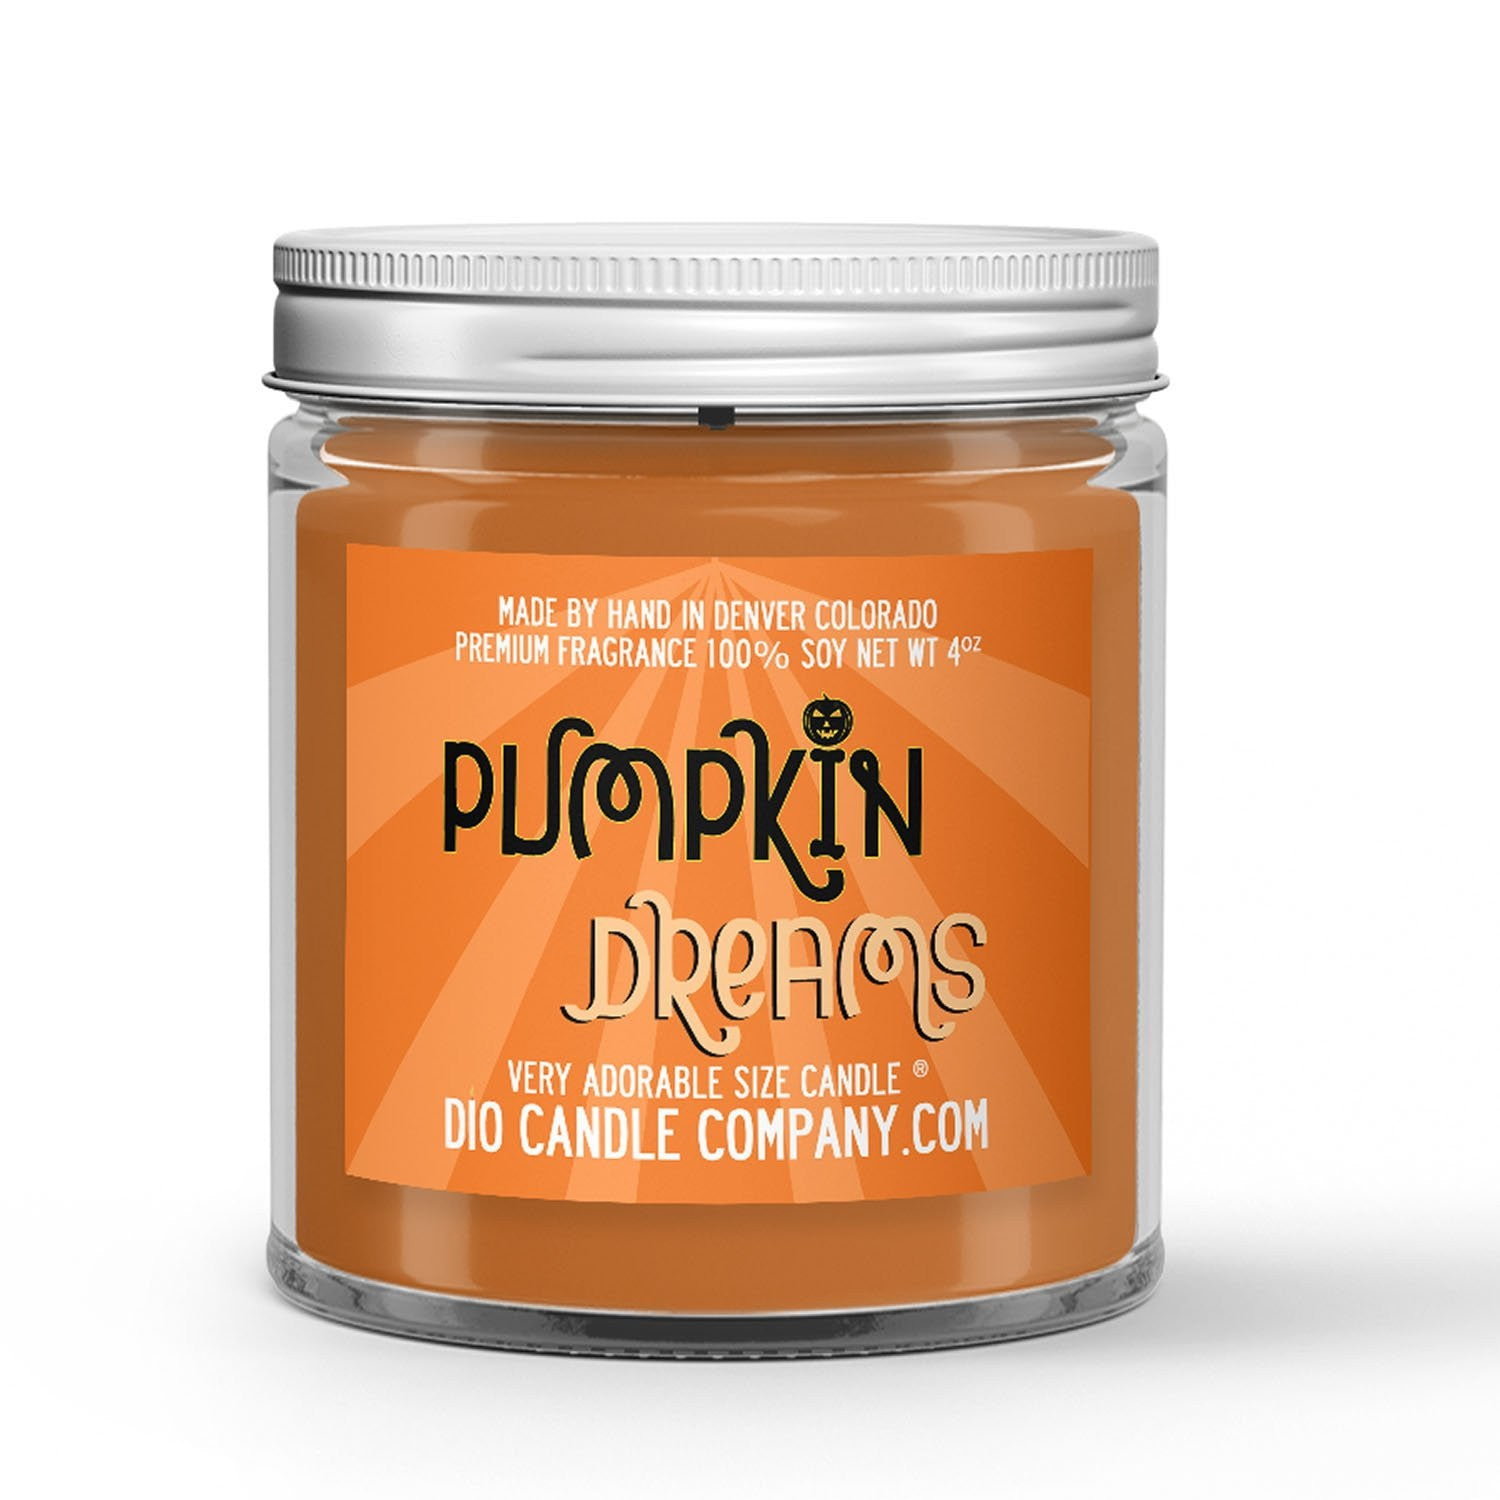 Pumpkin Dreams Candle - Spiced Pumpkin Waffles - Syrup - Pecans - 4oz Very Adorable Size Candle® - Dio Candle Company